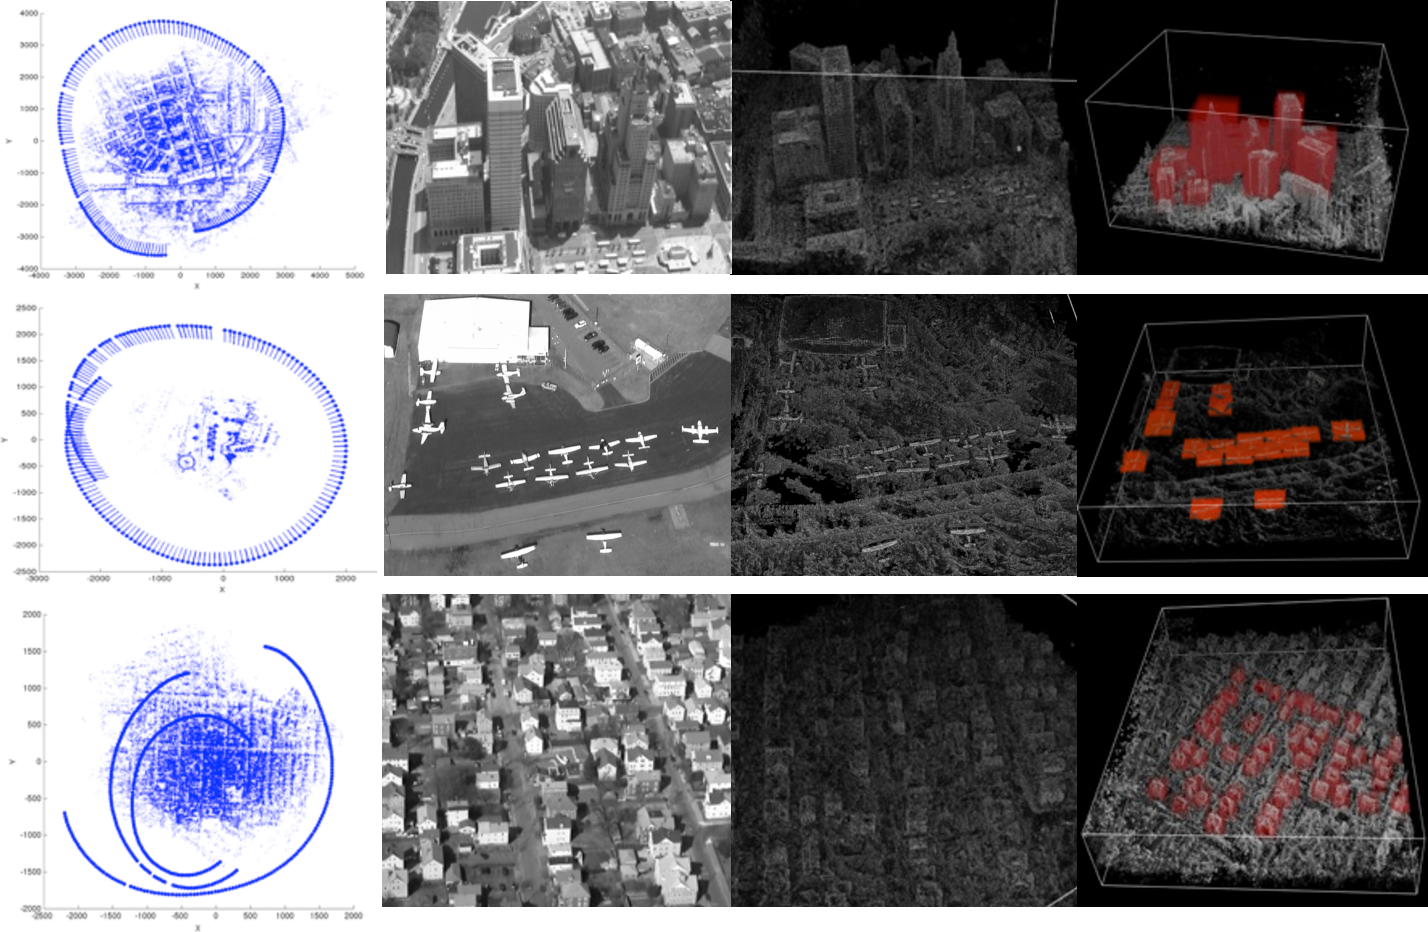 Fig. 6. From left to right (column by column): Camera path obtained using structure from motion algorithm [46]. Details of collected video frames. The learned expected appearance volumes, EVM. Examples of bounding boxes around objects of interest.